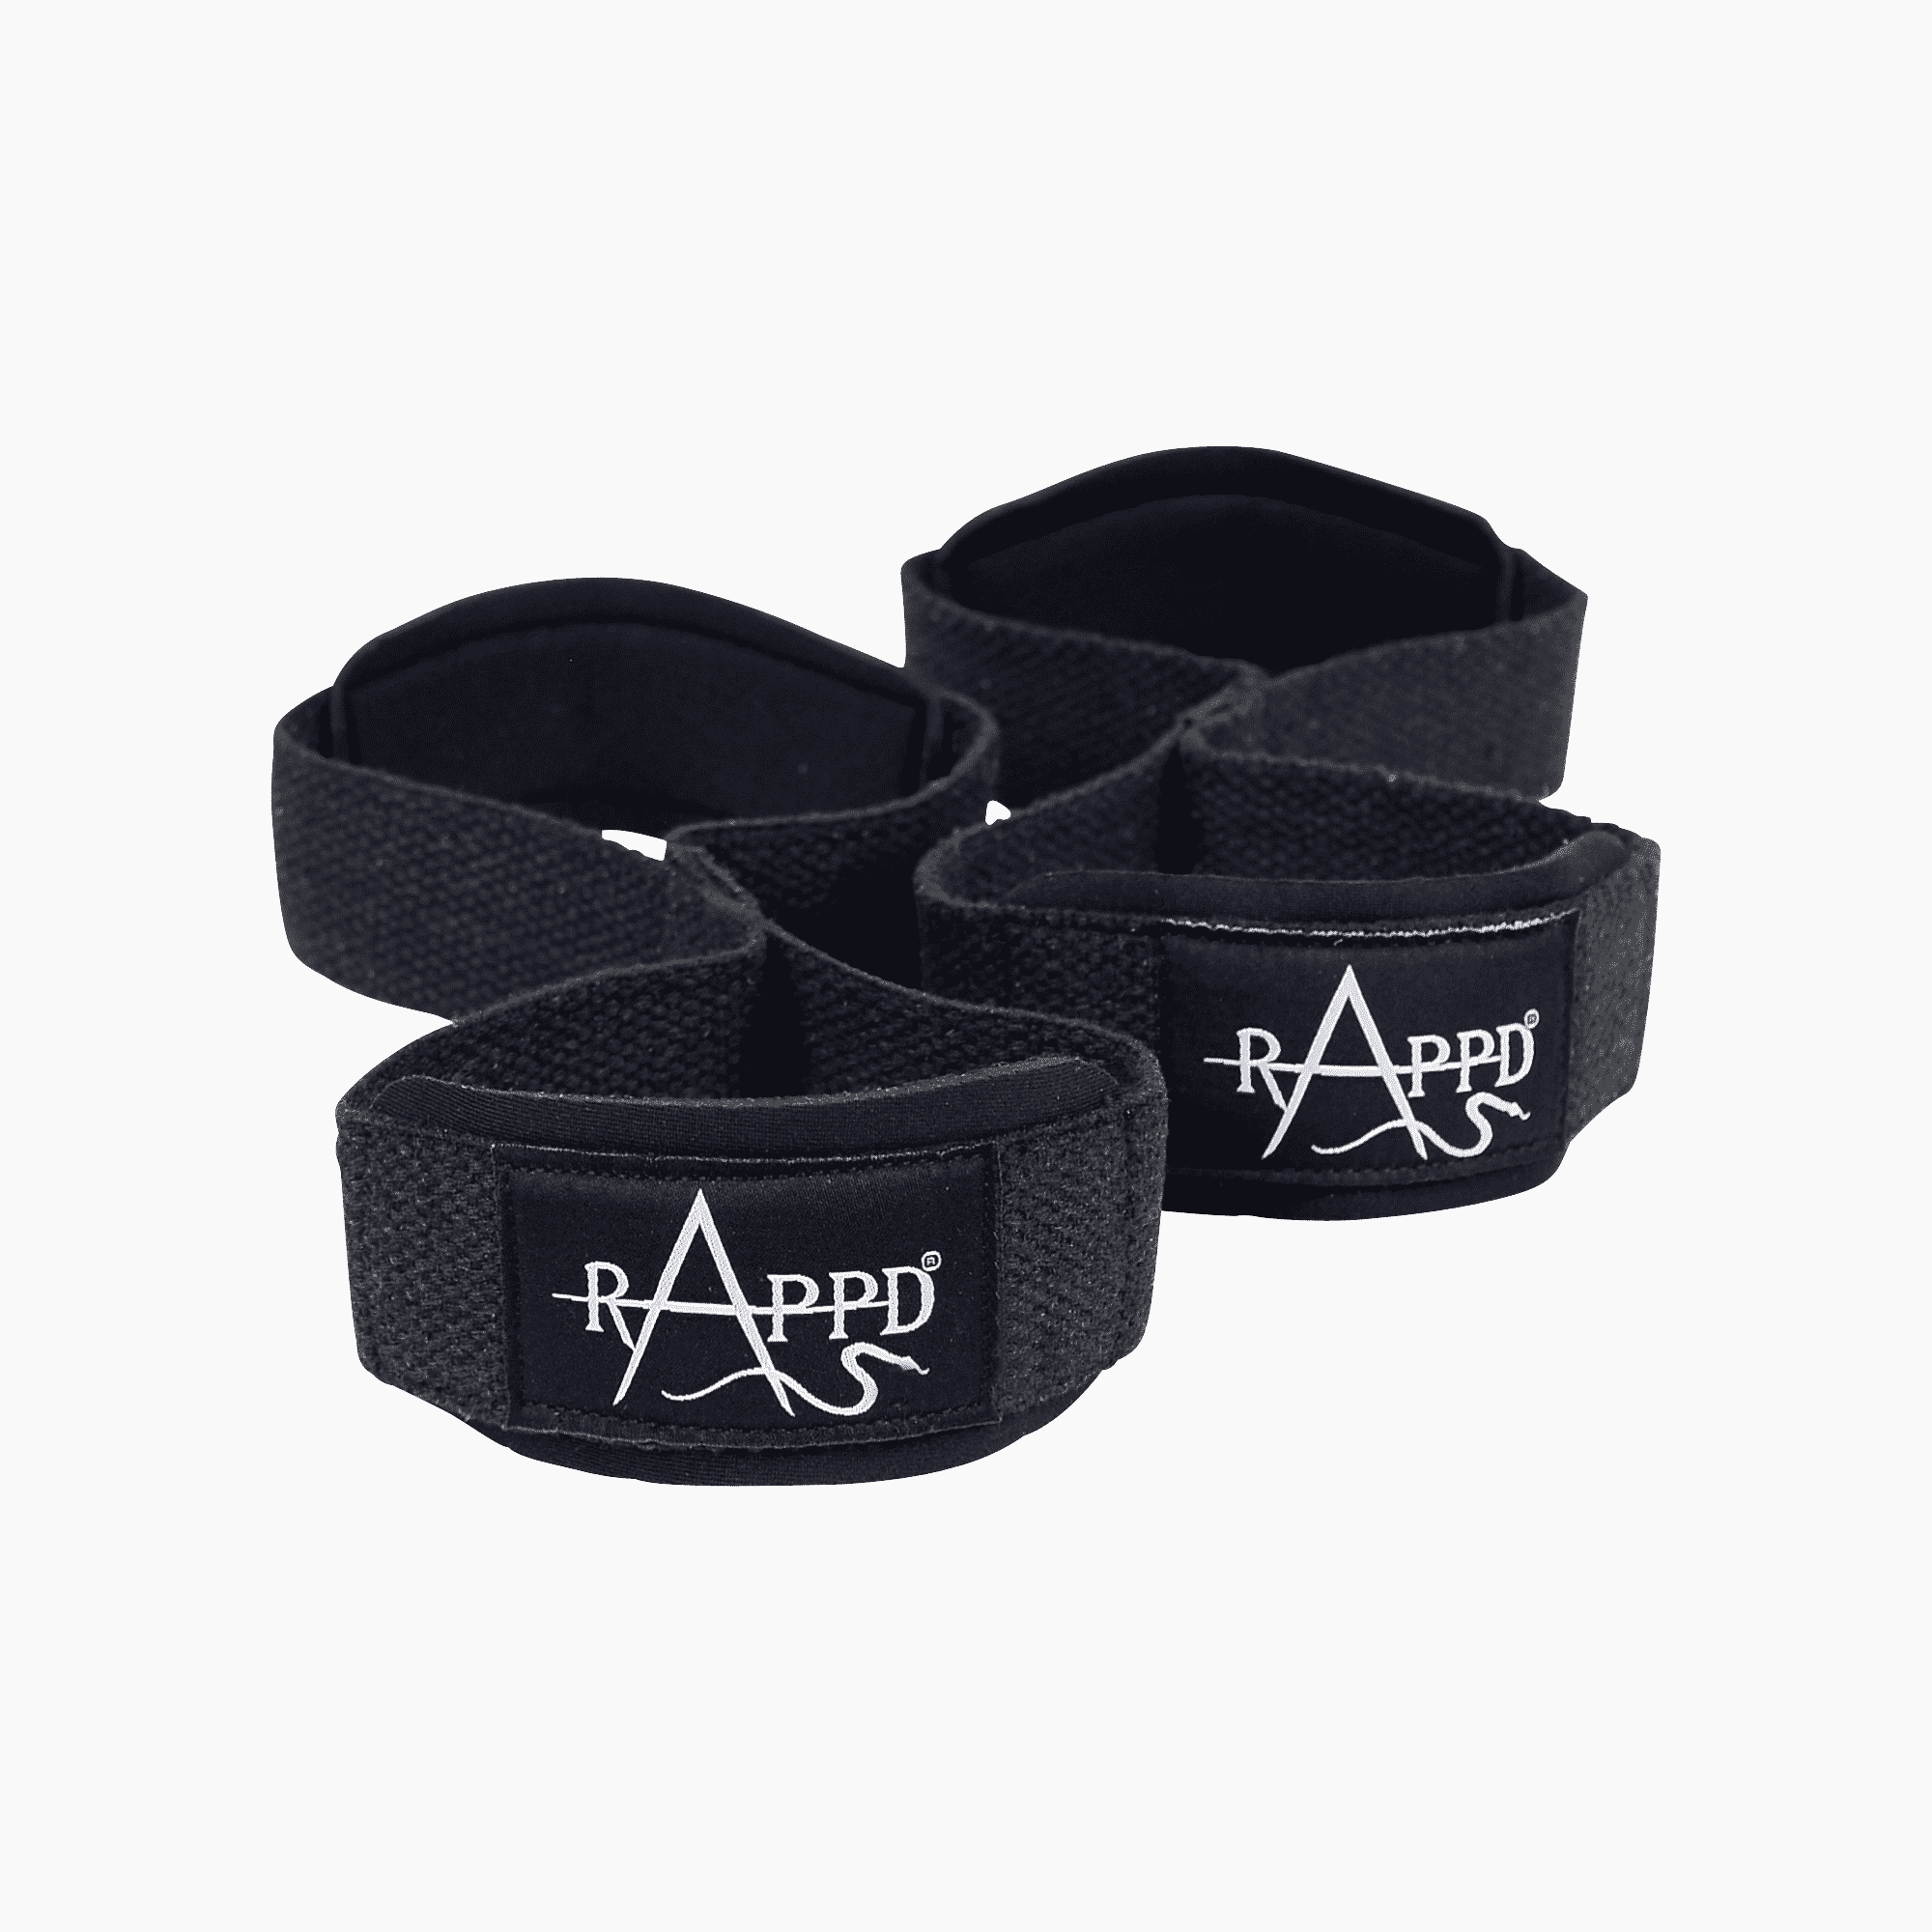 Rappd Lifting Straps Figure 8